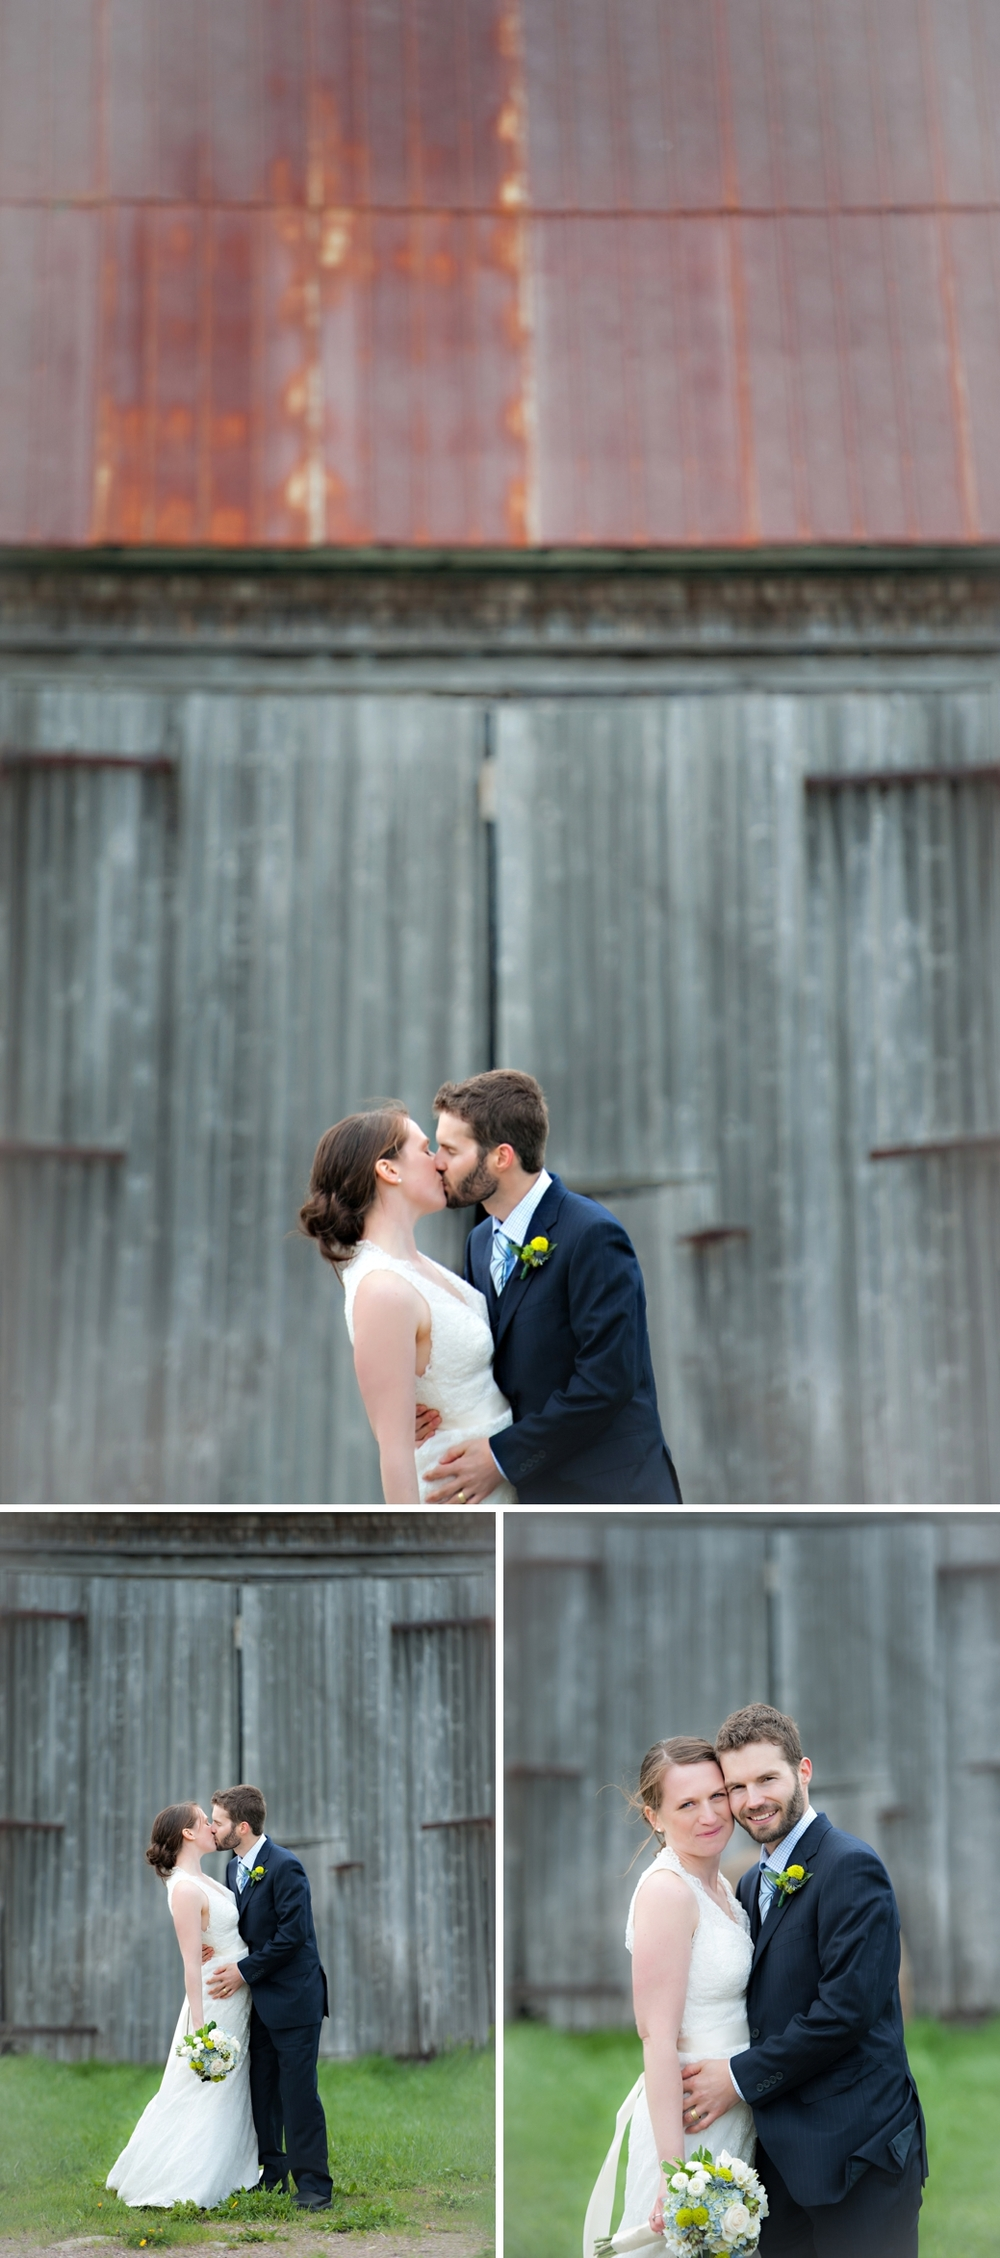 The_Music_Barn_Sackville_Wedding29.jpg